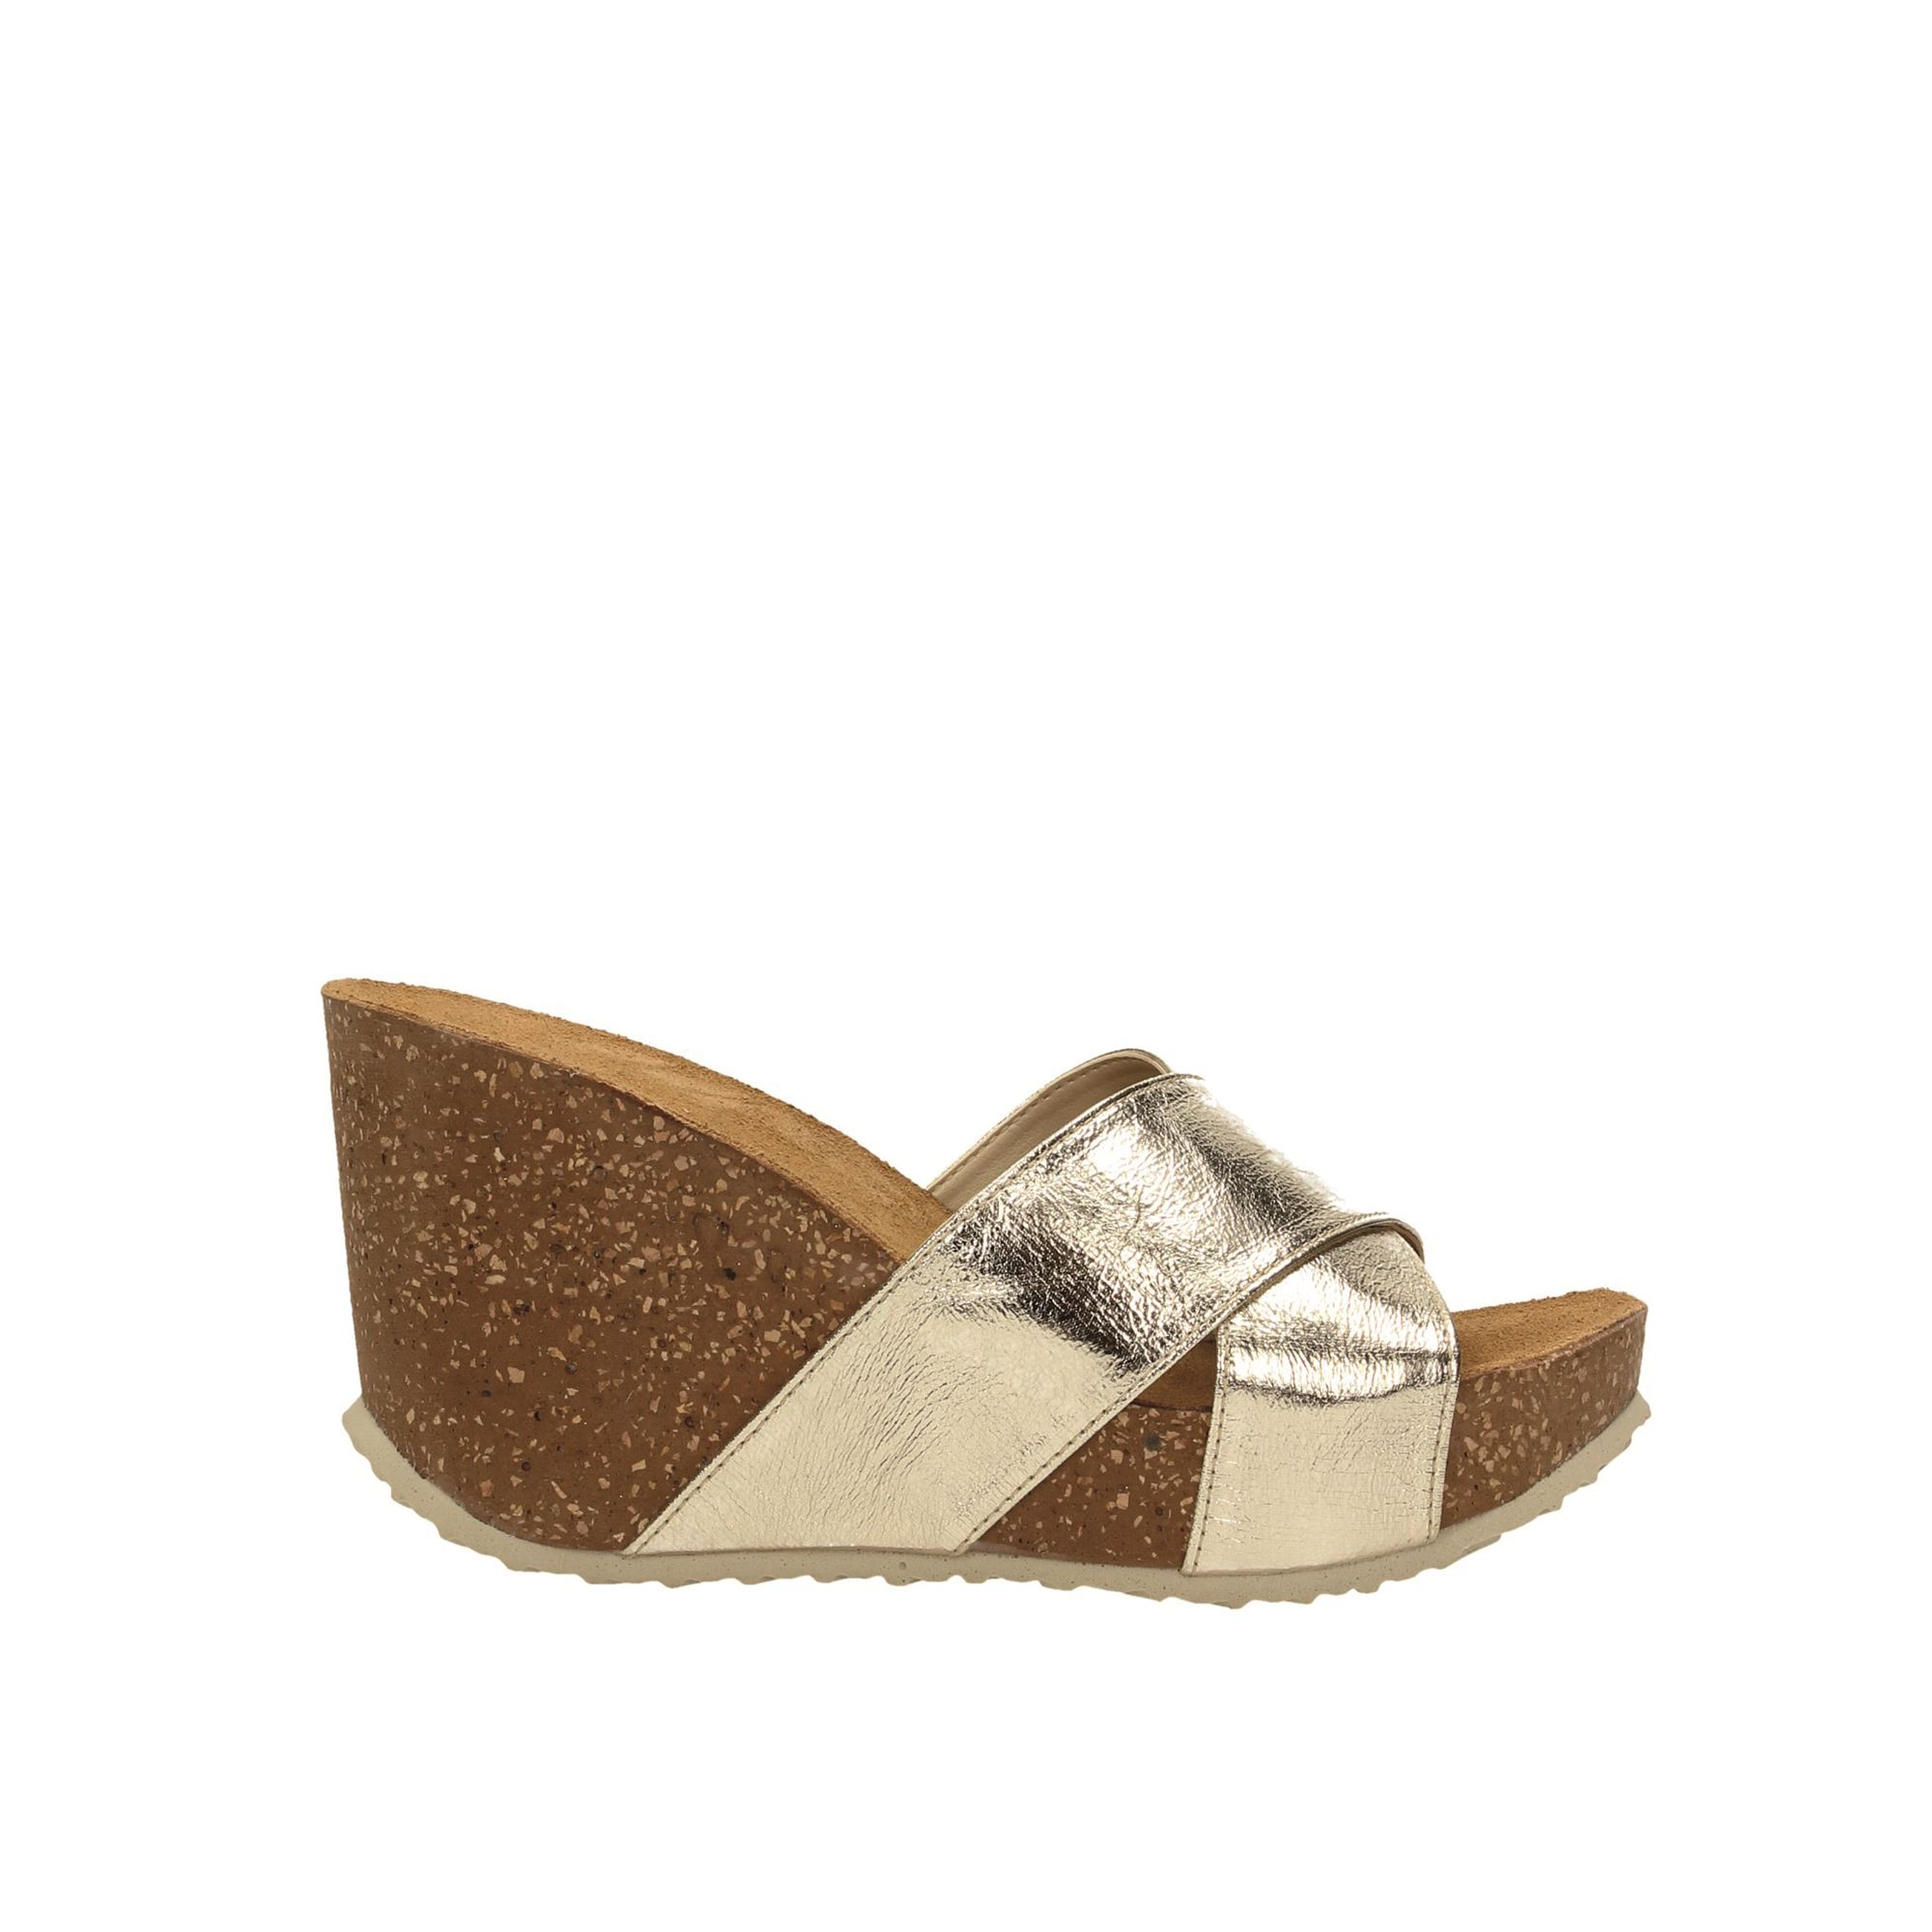 Tata Italia Shoes Woman Sandali Gold 141150